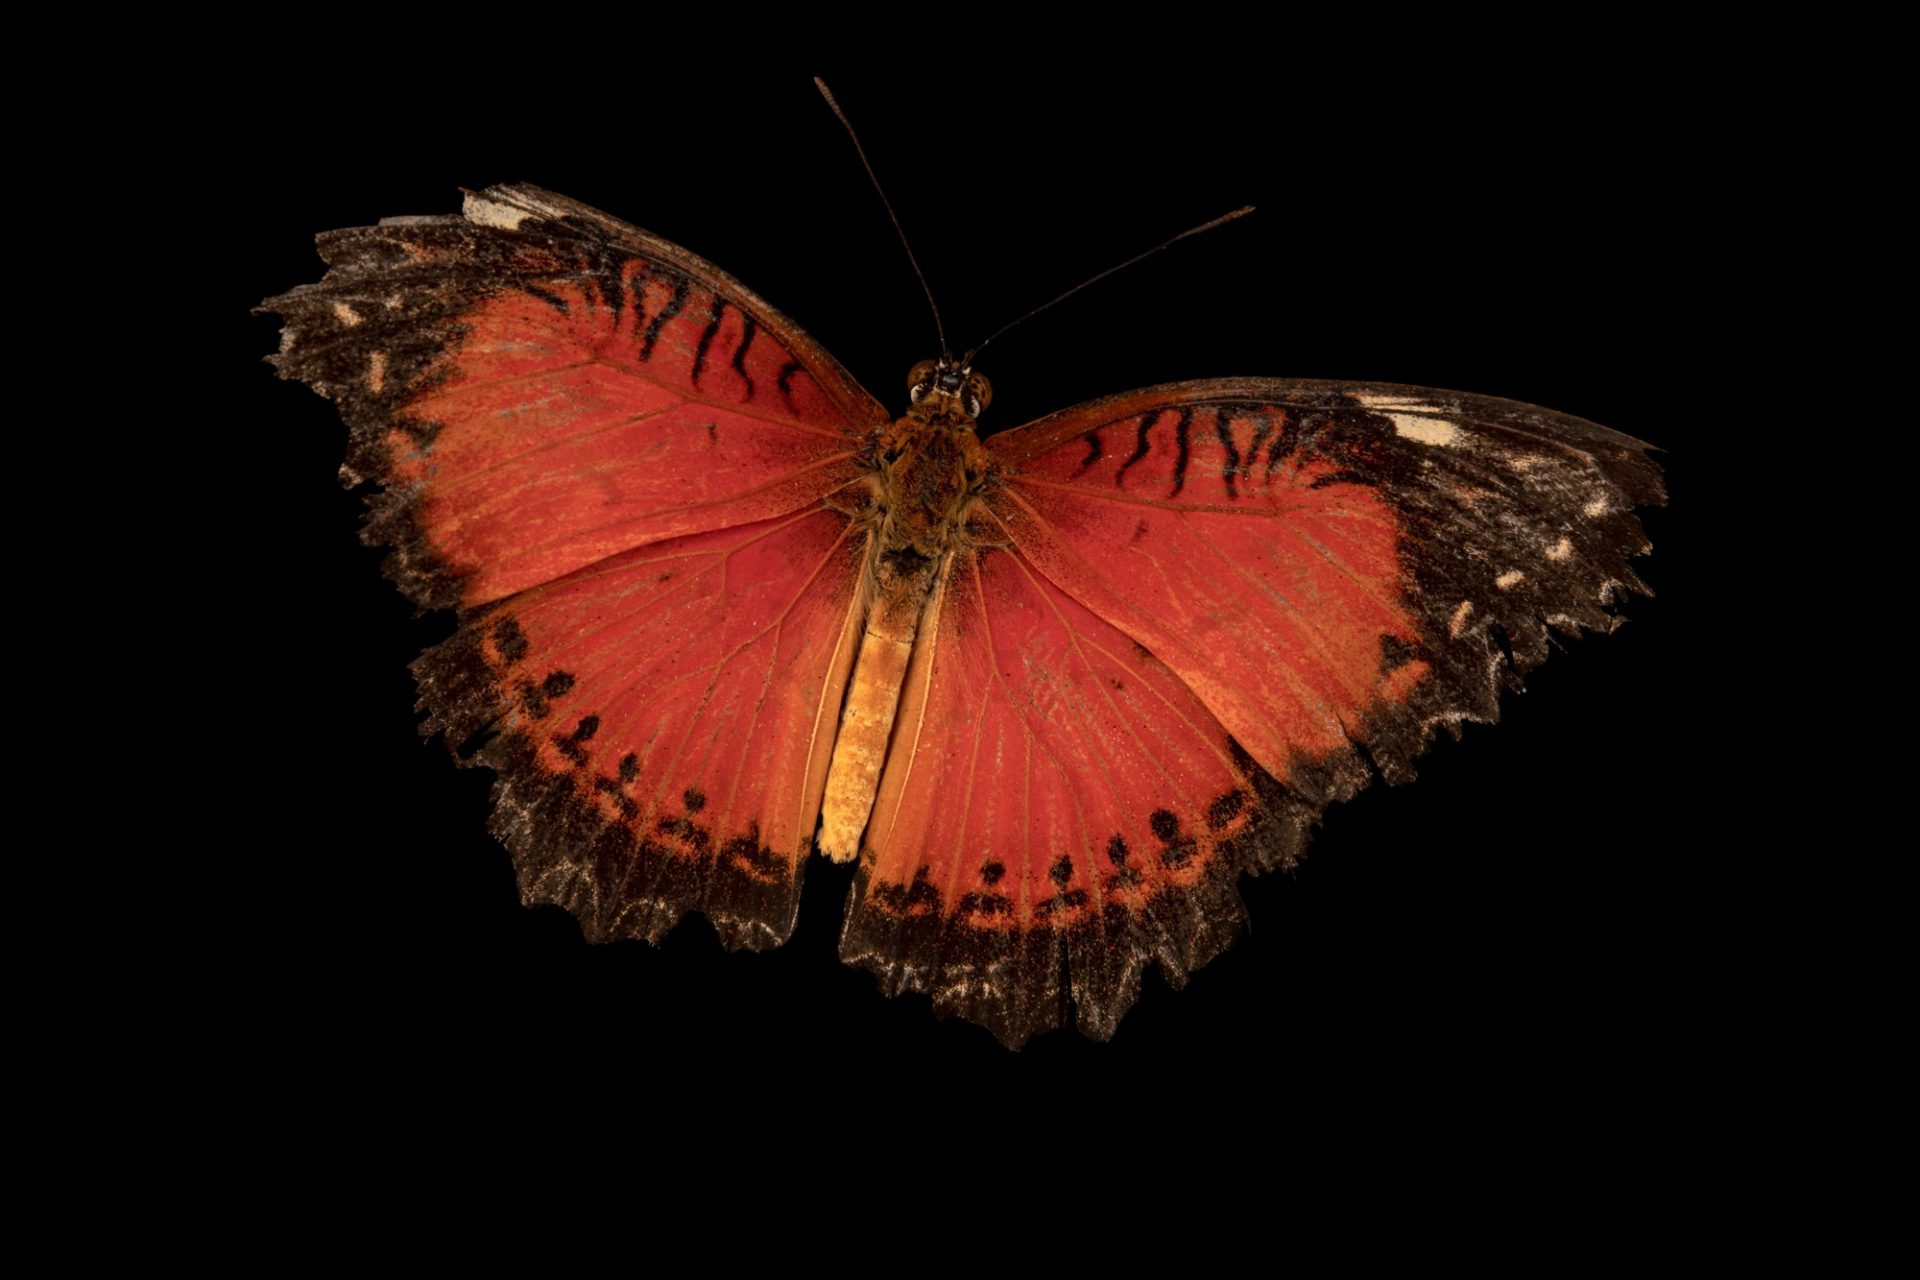 Photo: A red lacewing (Cethosia biblis liacura) at Davao Butterfly House in Davao City, Philippines.